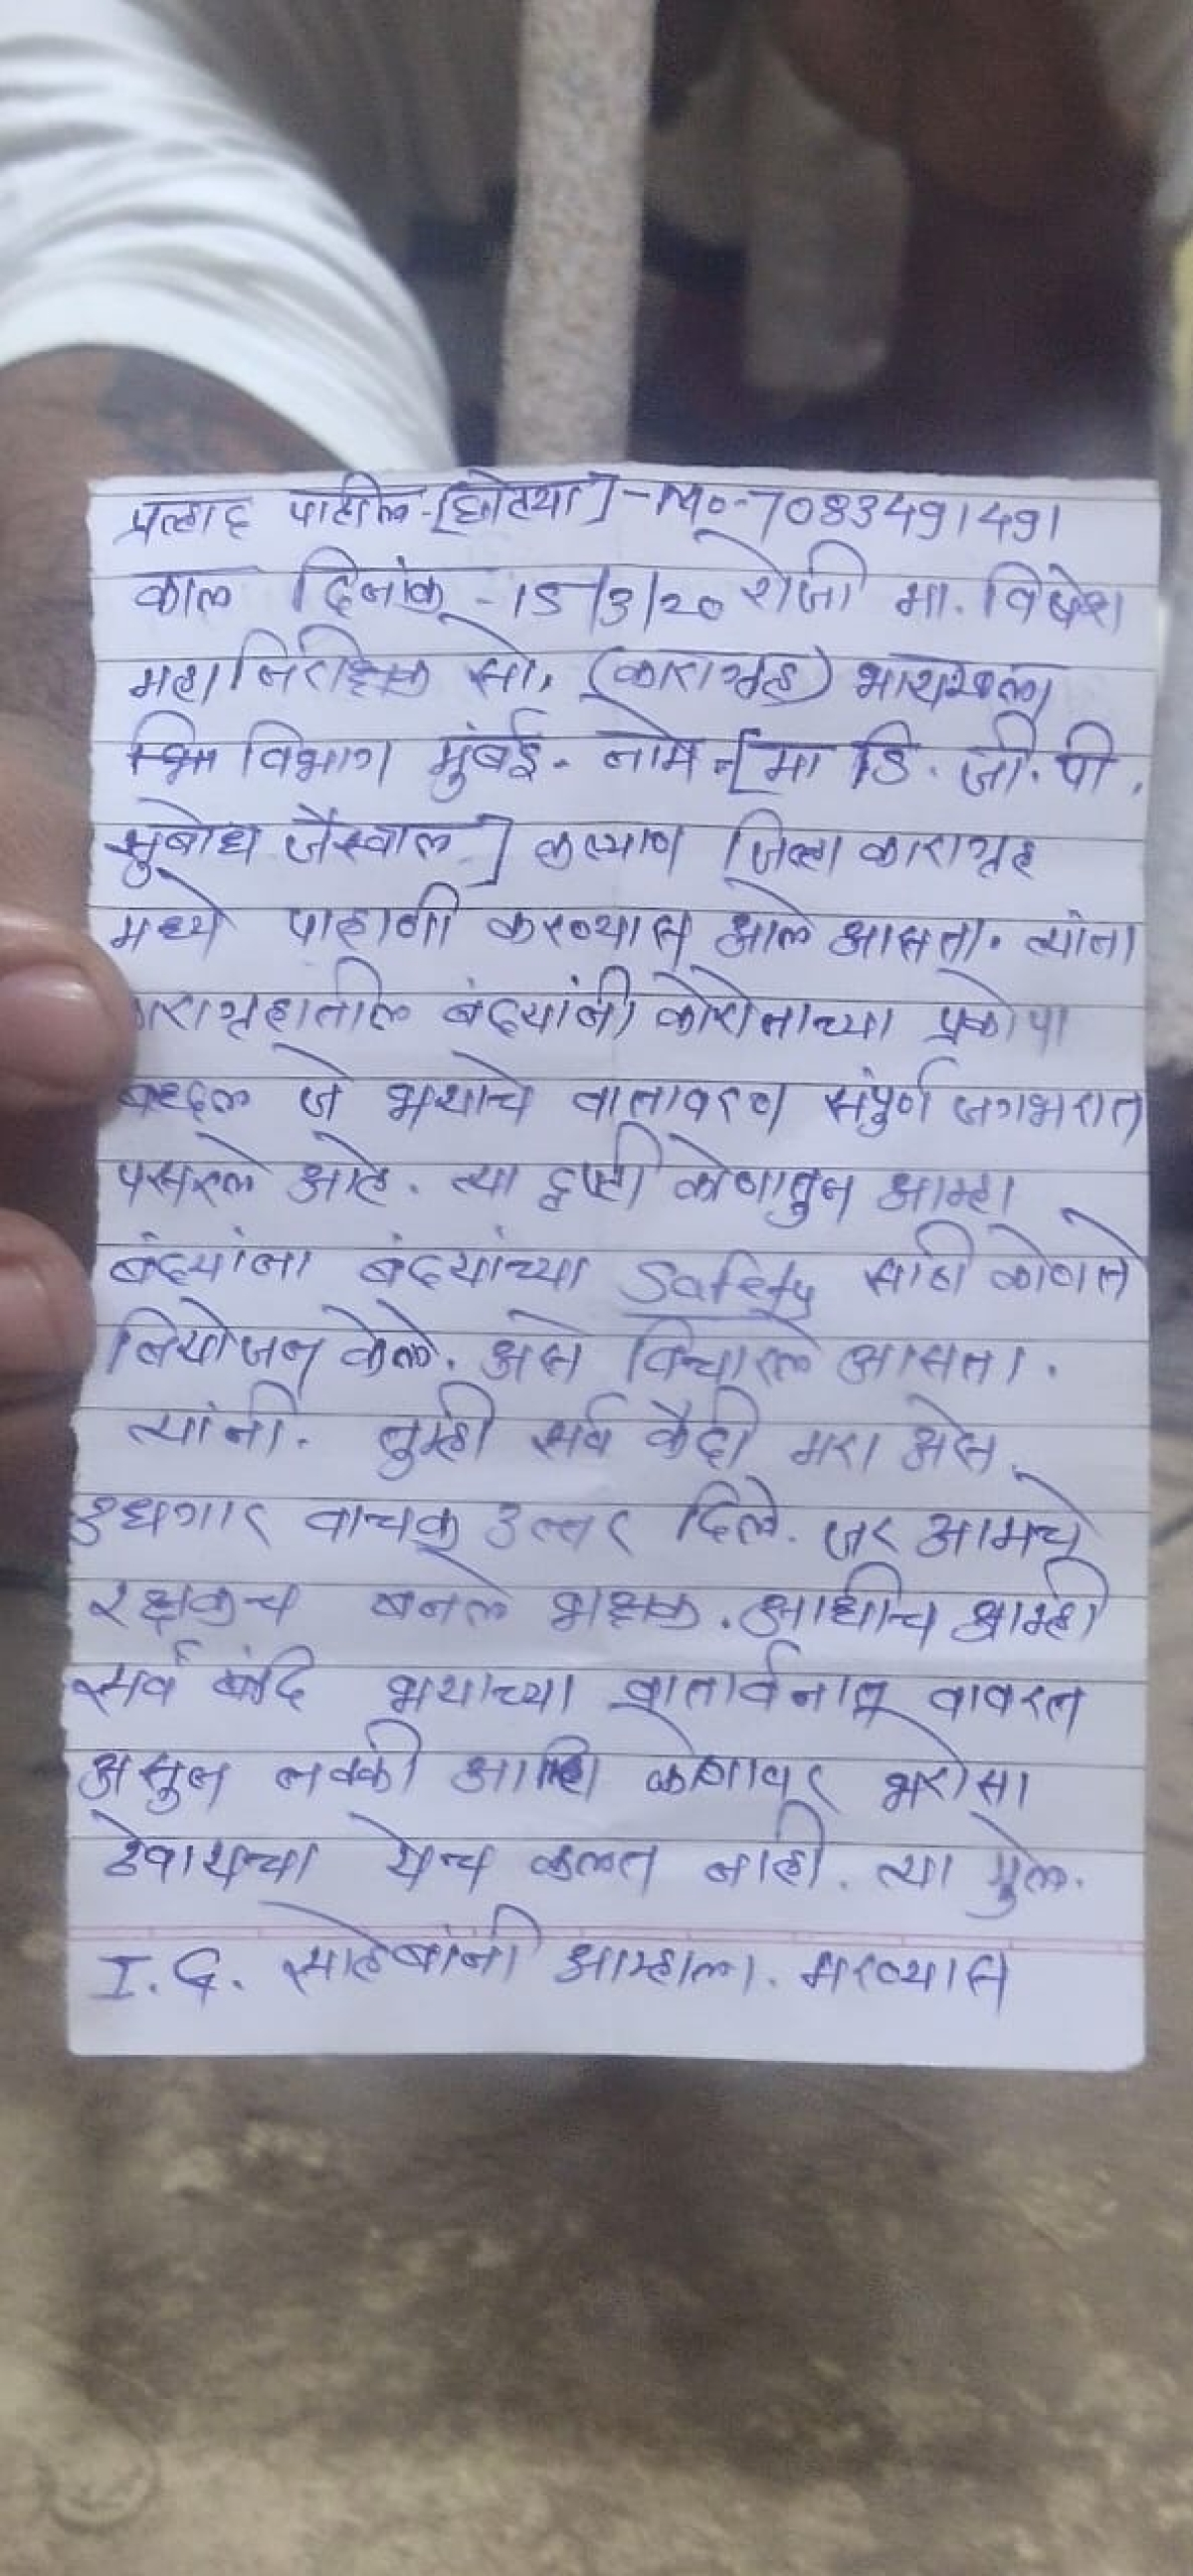 The letter that was circulated